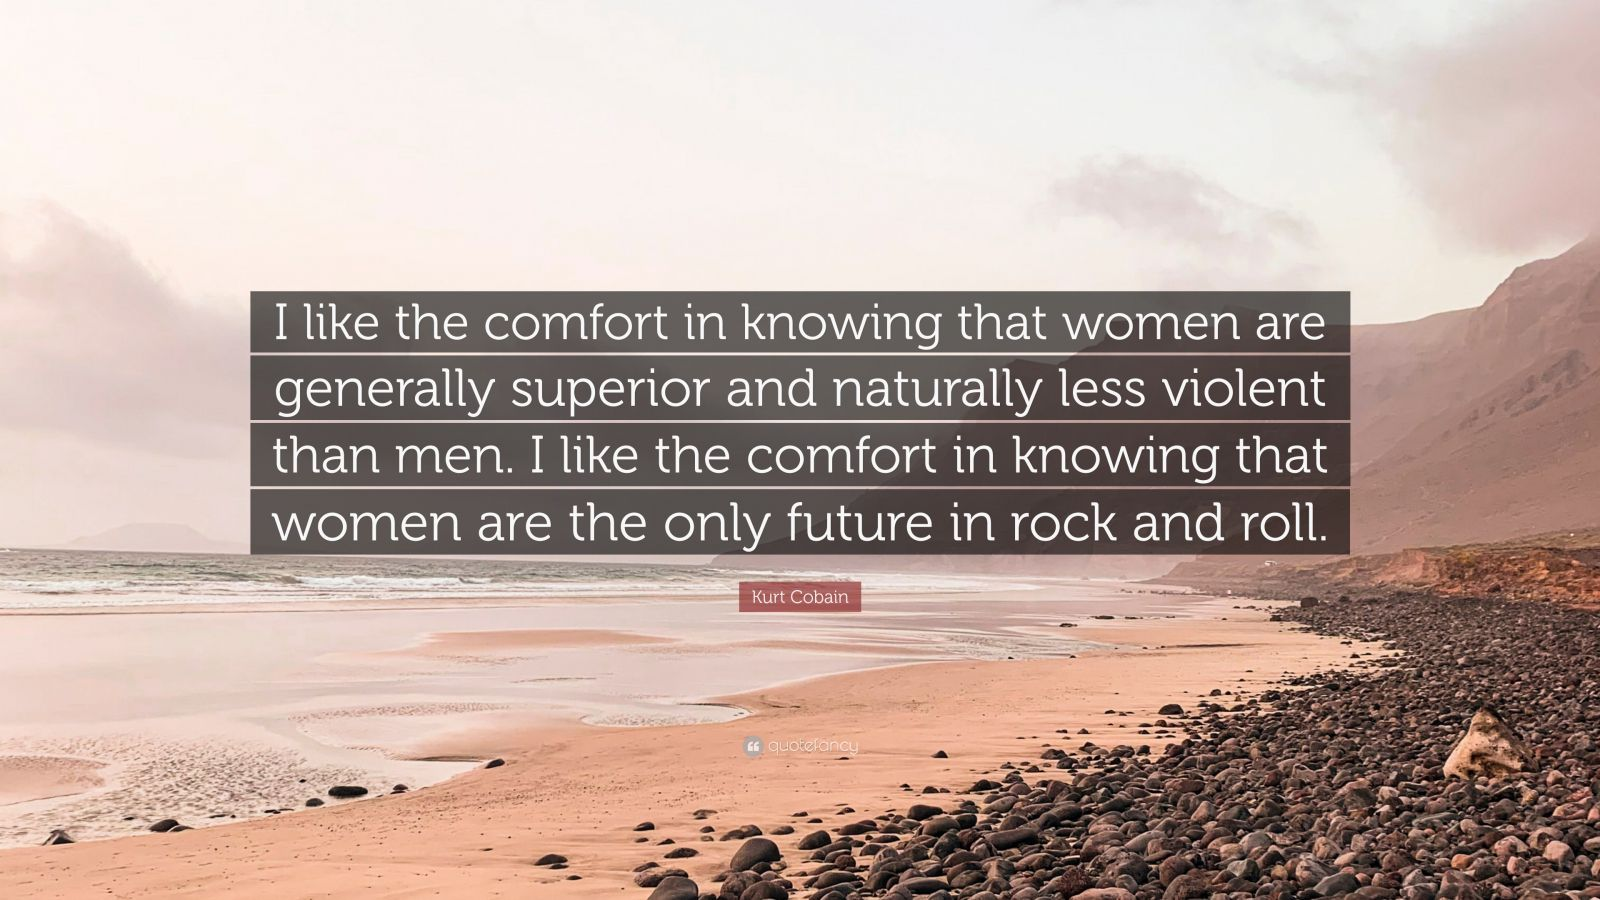 """Kurt Cobain Quote: """"I like the comfort in knowing that women are generally superior and naturally less violent than men. I like the comfort in knowing that women are the only future in rock and roll."""""""